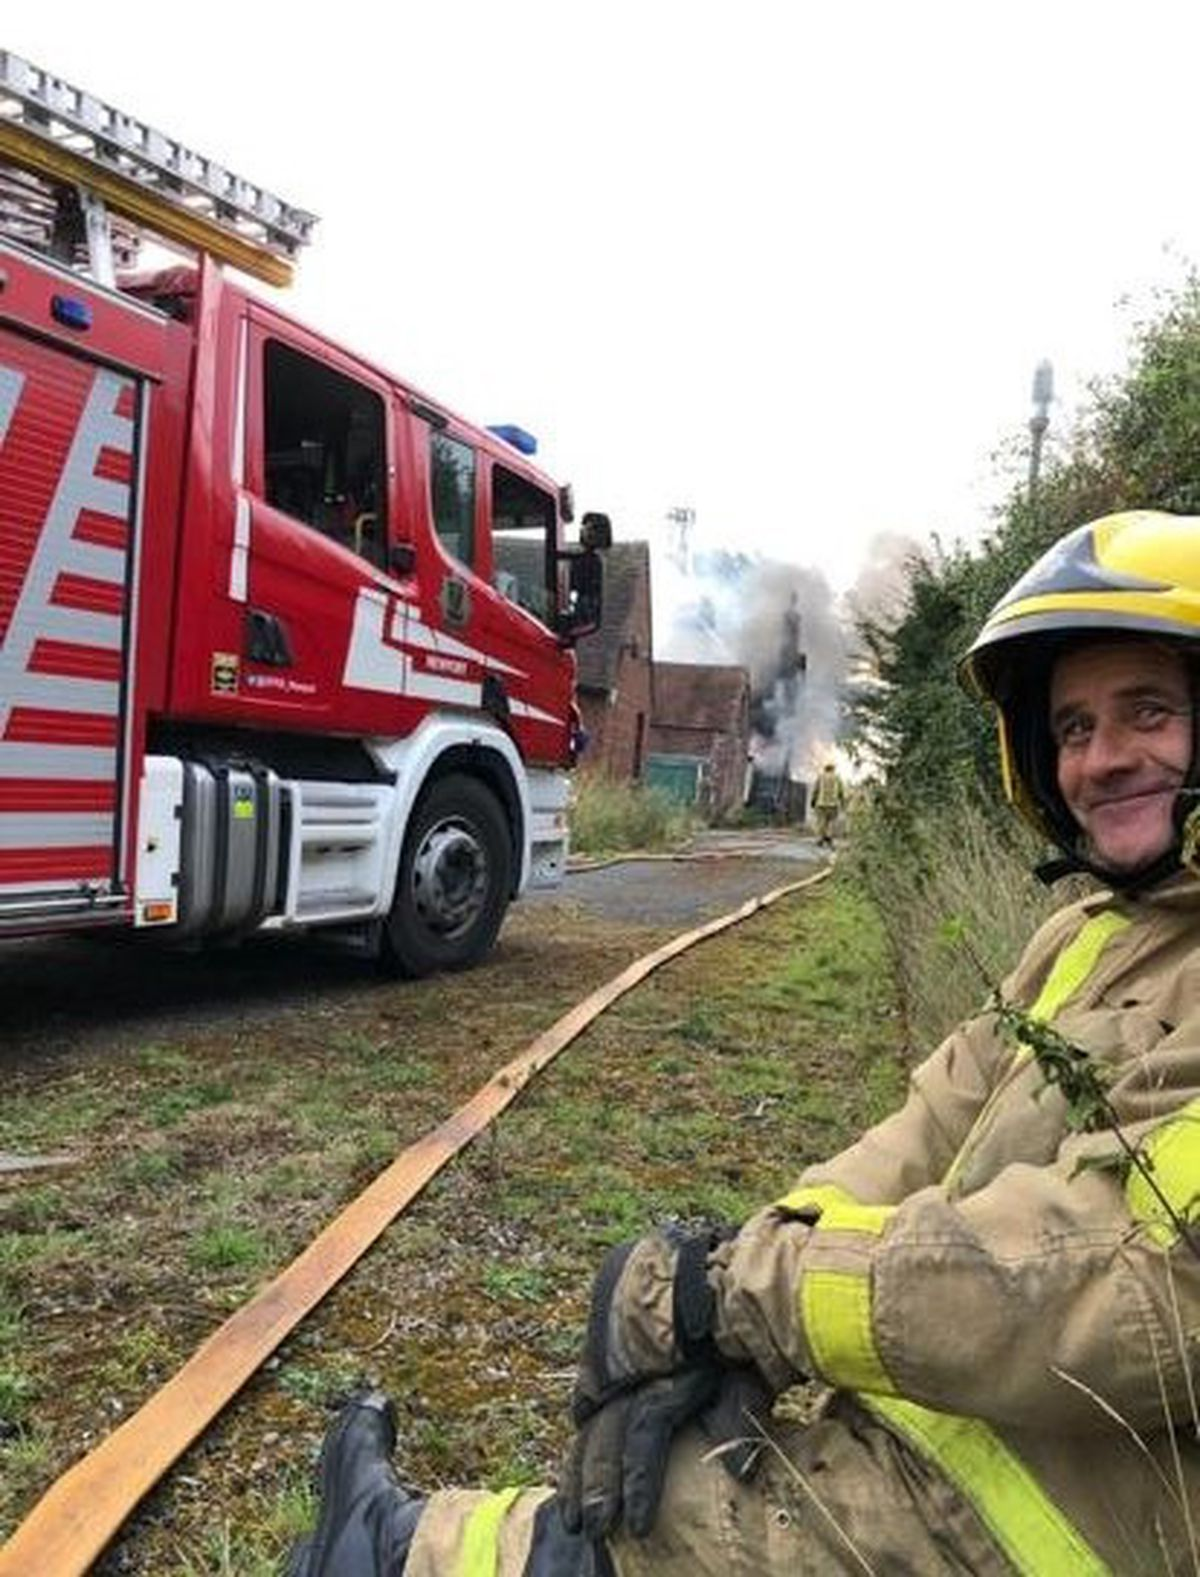 Trevor while out on duty as an on-call firefighter